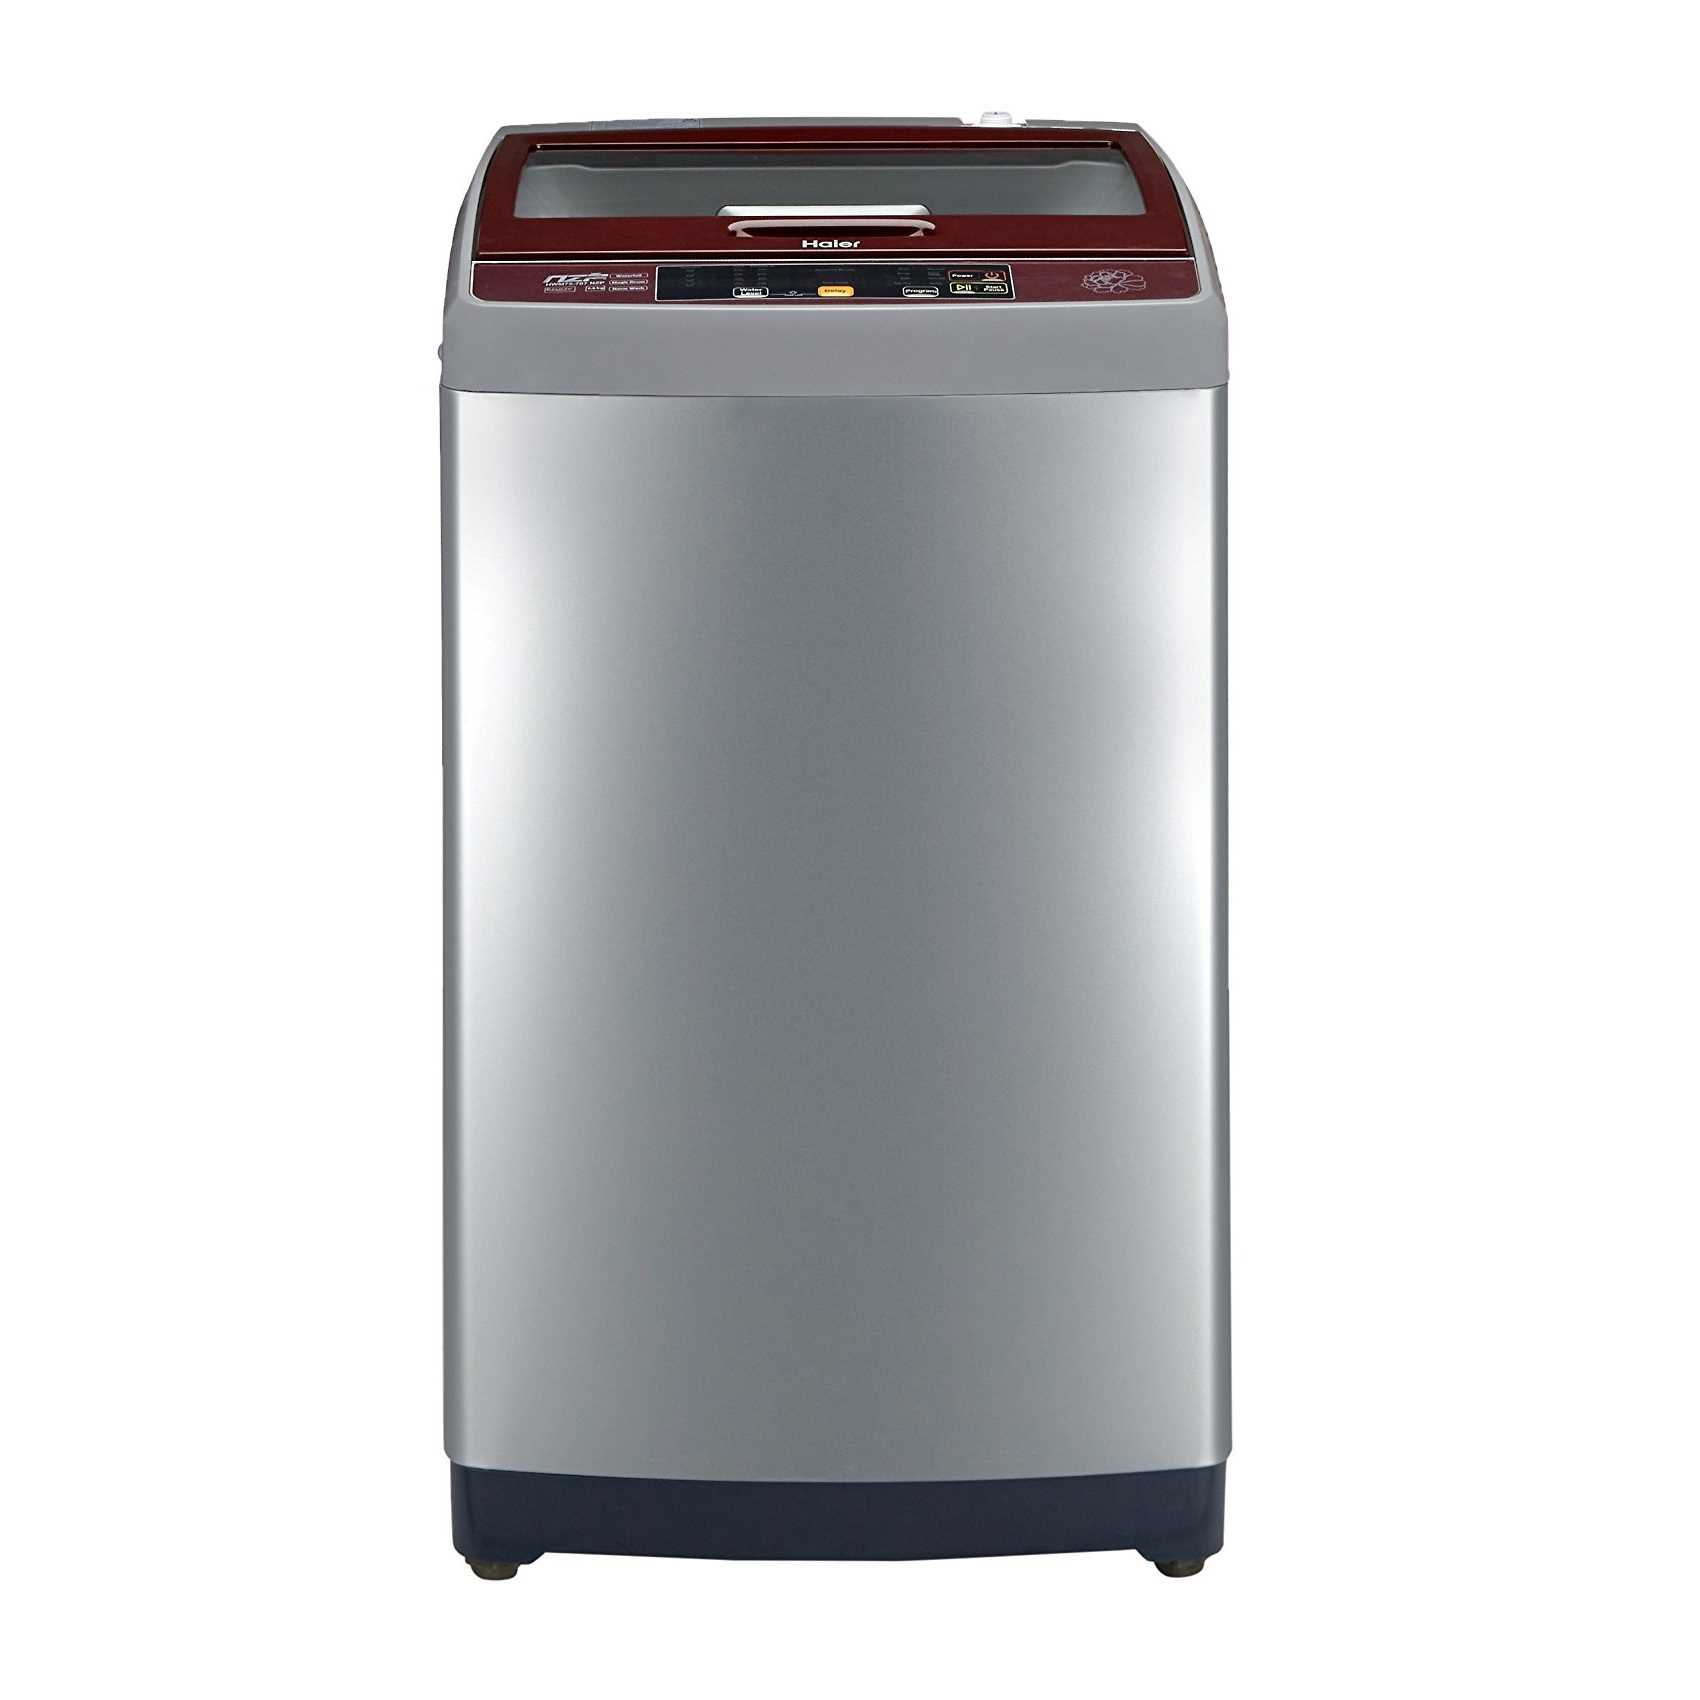 Haier HWM75-707NZP 7.5 Kg Fully Automatic Top Loading Washing Machine